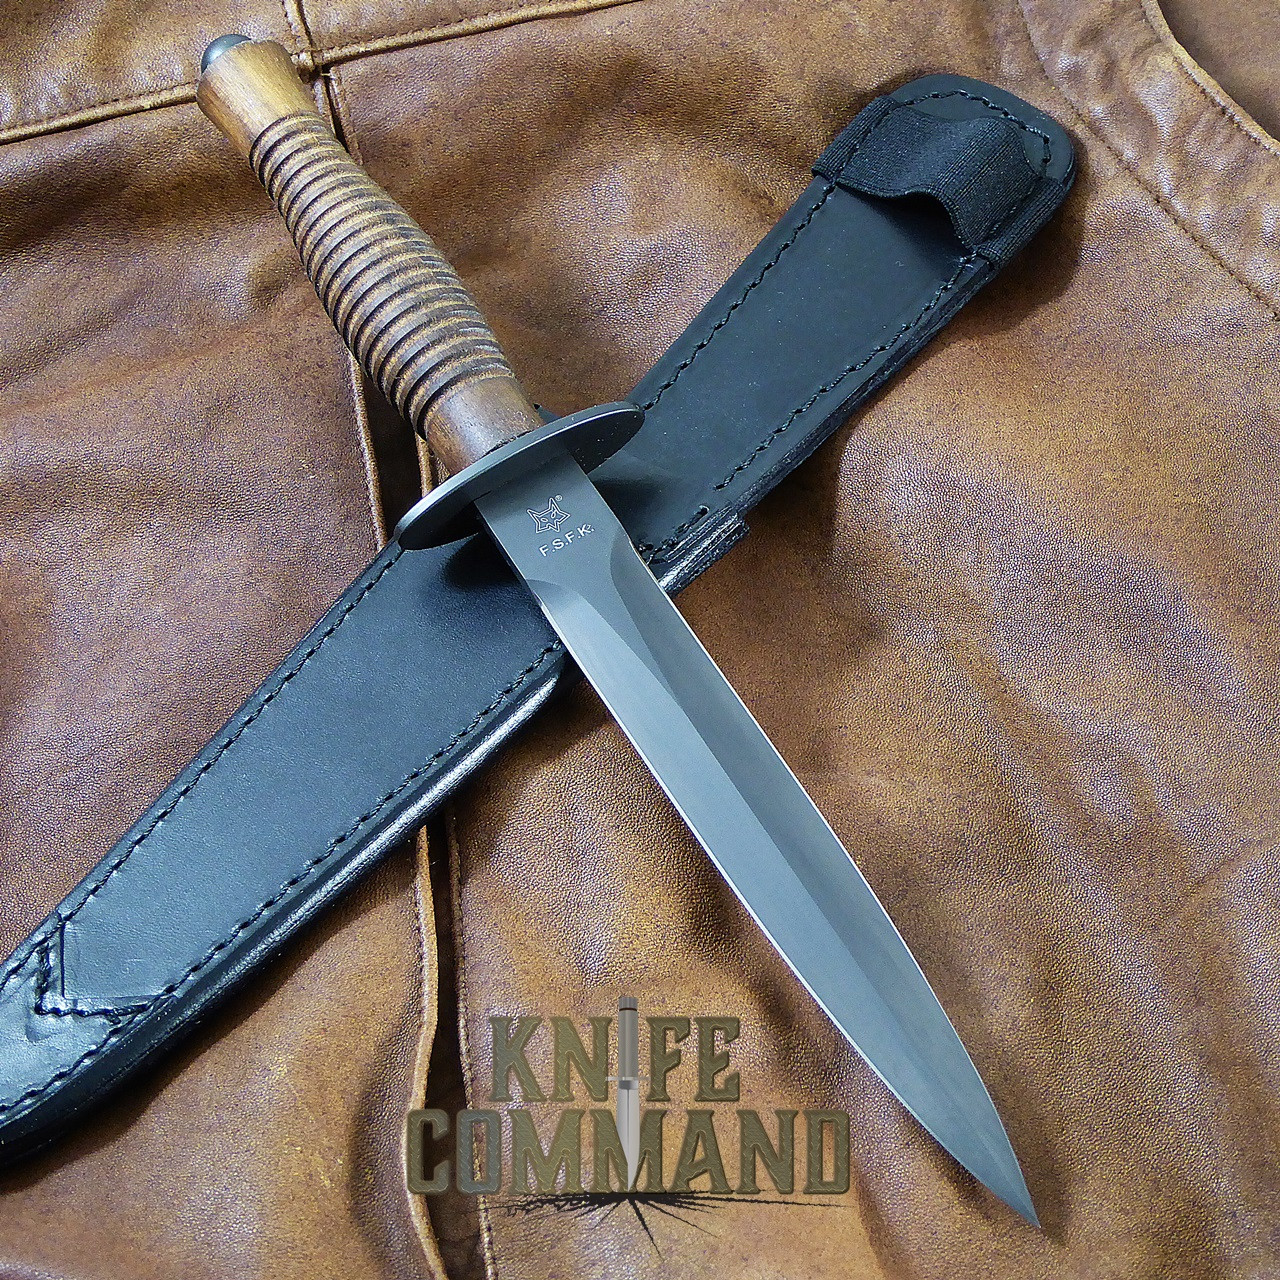 Fox Knives FX-592 W Fairbairn Sykes Combat Dagger Knife PVD Walnut.  Walnut handle and black blade.